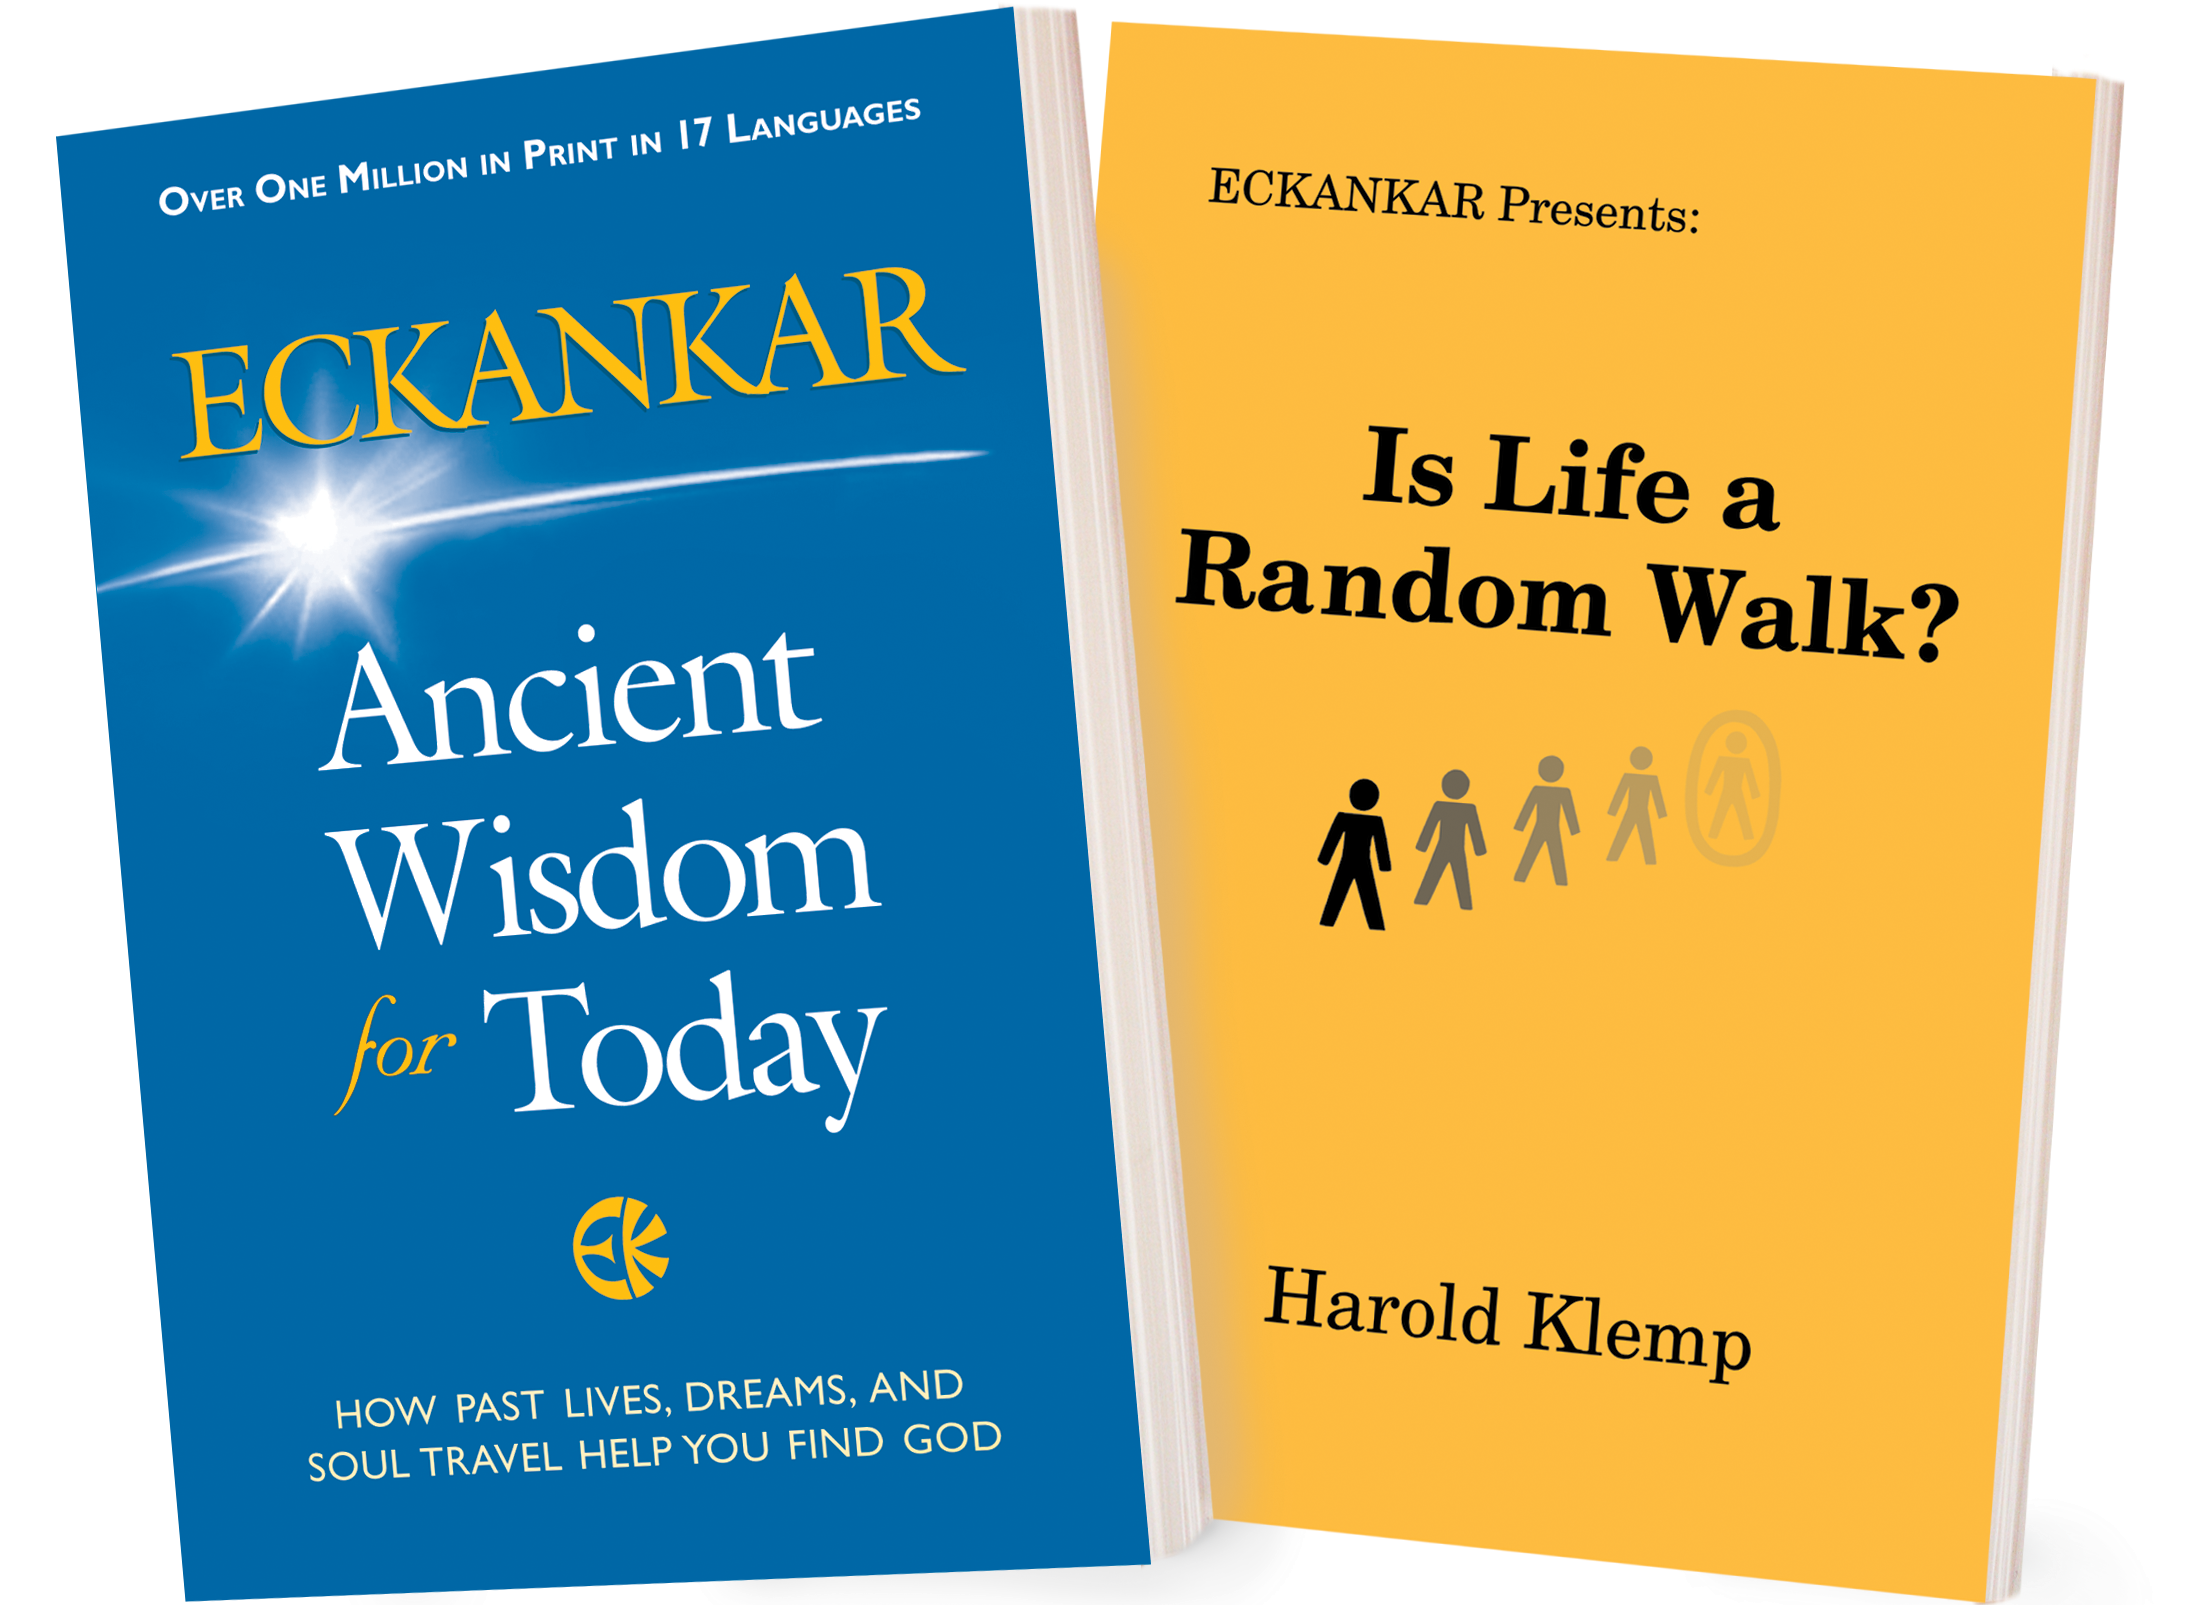 http://Book%20covers%20of%20Ancient%20Wisdom%20for%20Today%20and%20Is%20life%20a%20Random%20Walk?